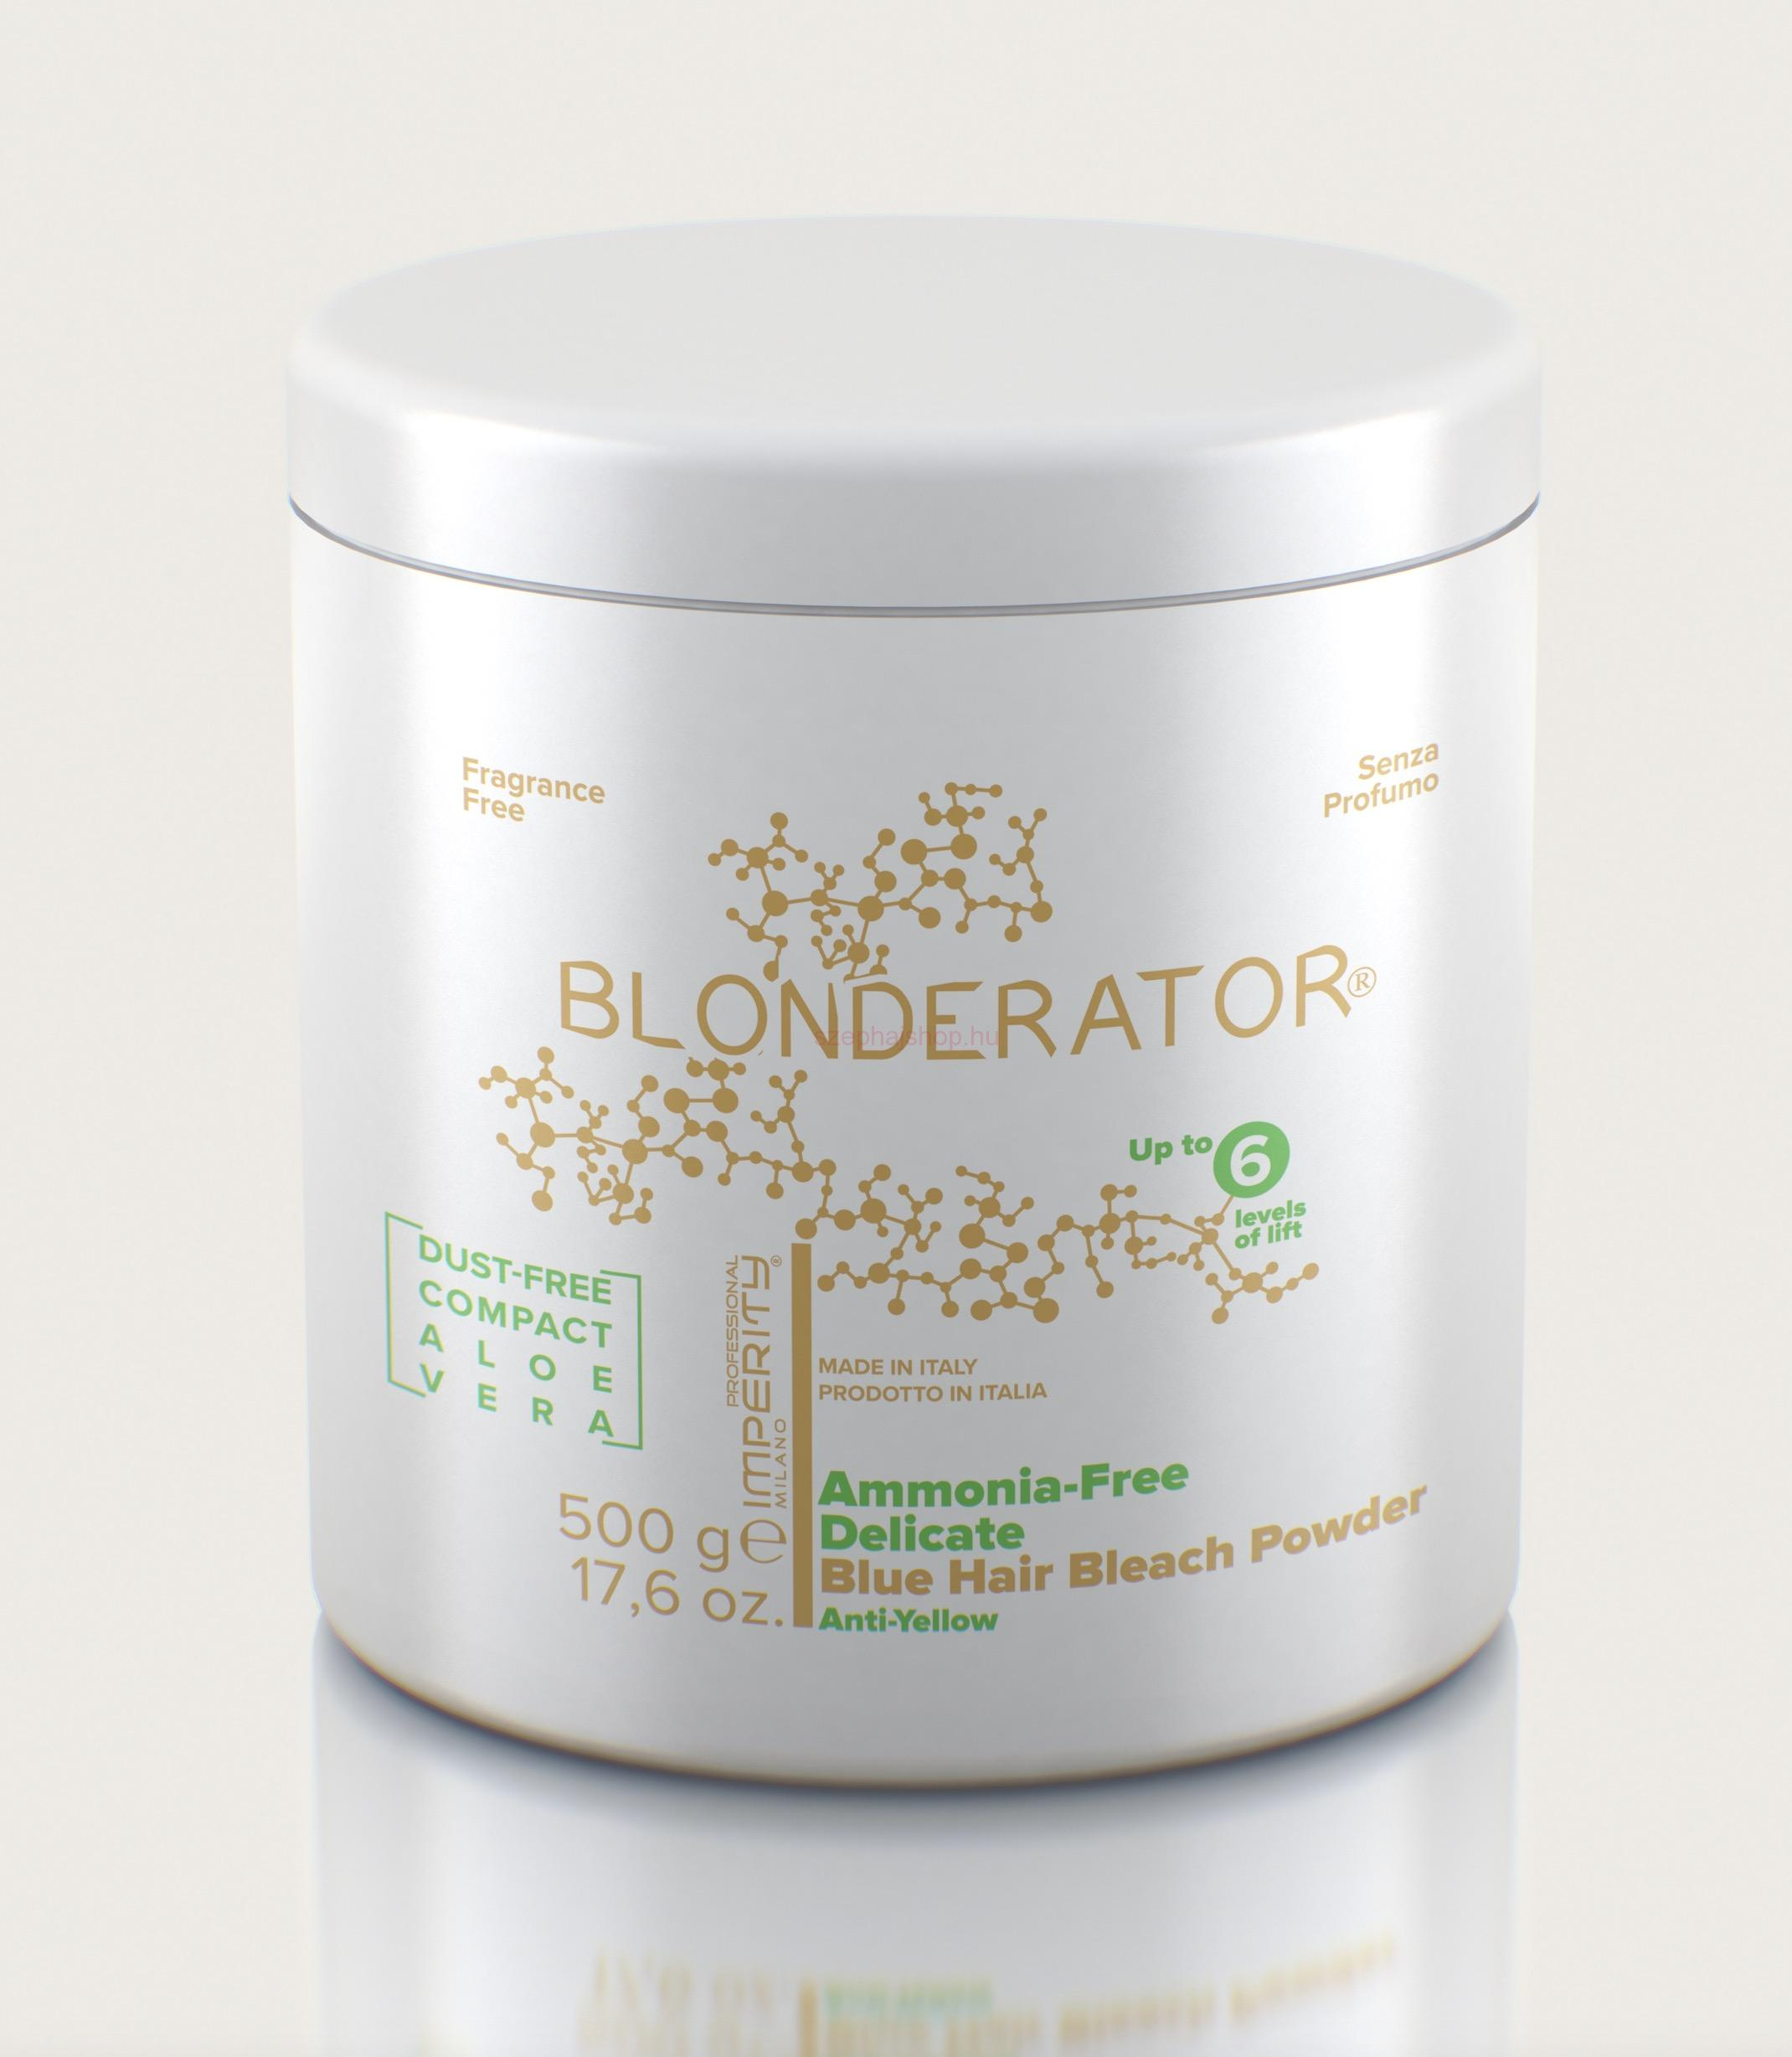 IMPERITY Blonderator Ammonia Free Delicate Blue Hair Bleach Powder Aloe V. 500 g